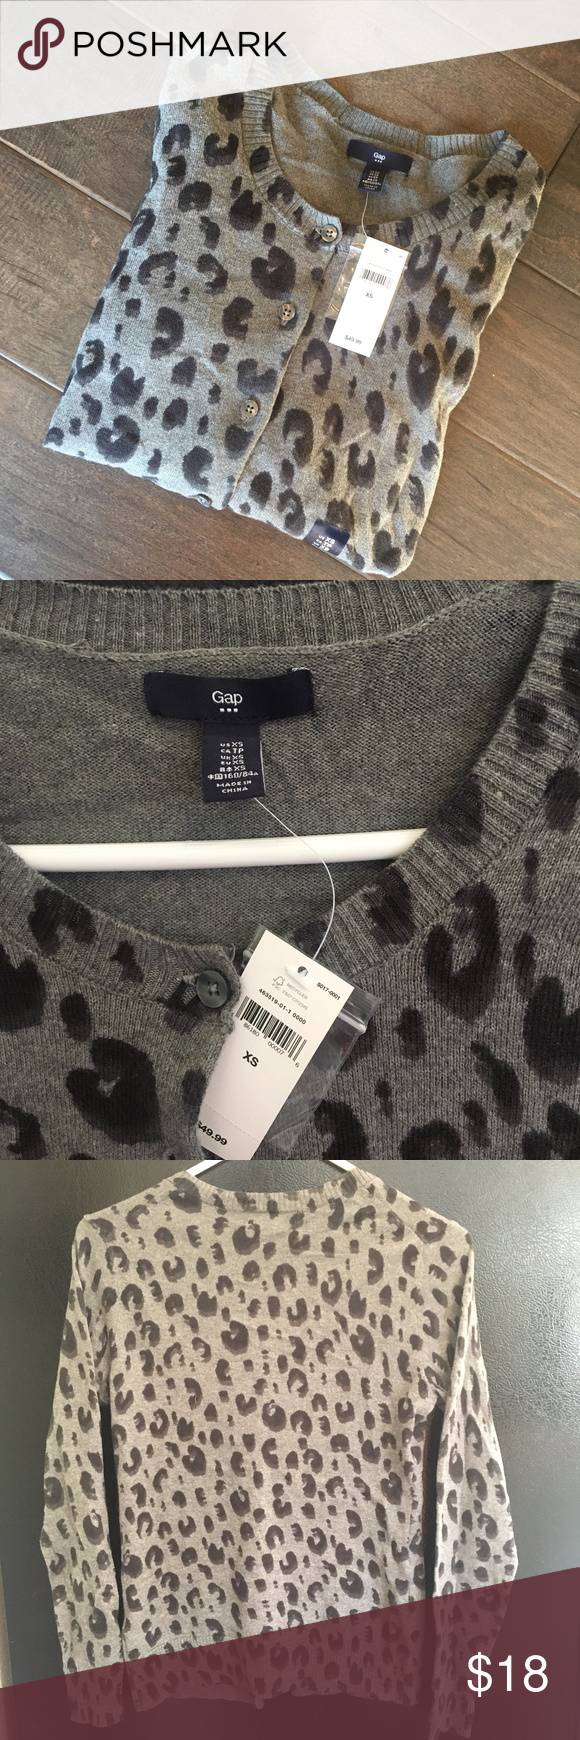 b601a5901038 Gap XS animal print cardigan It's classic and new with tags! Gray leopard  print from Gap Factory. GAP Sweaters Cardigans